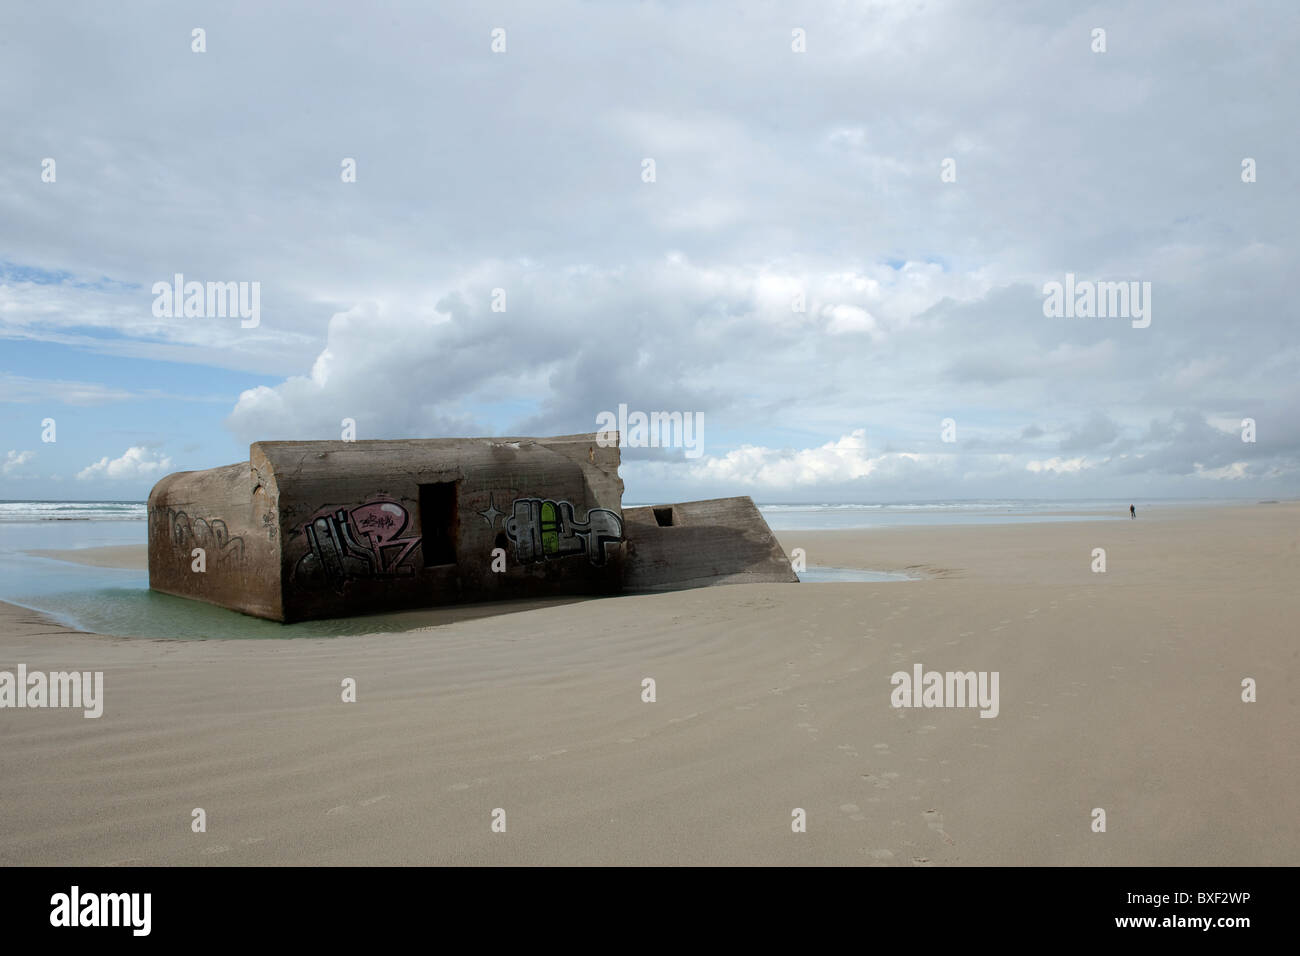 bunker plage audierne near plomeur, brittany france - Stock Image